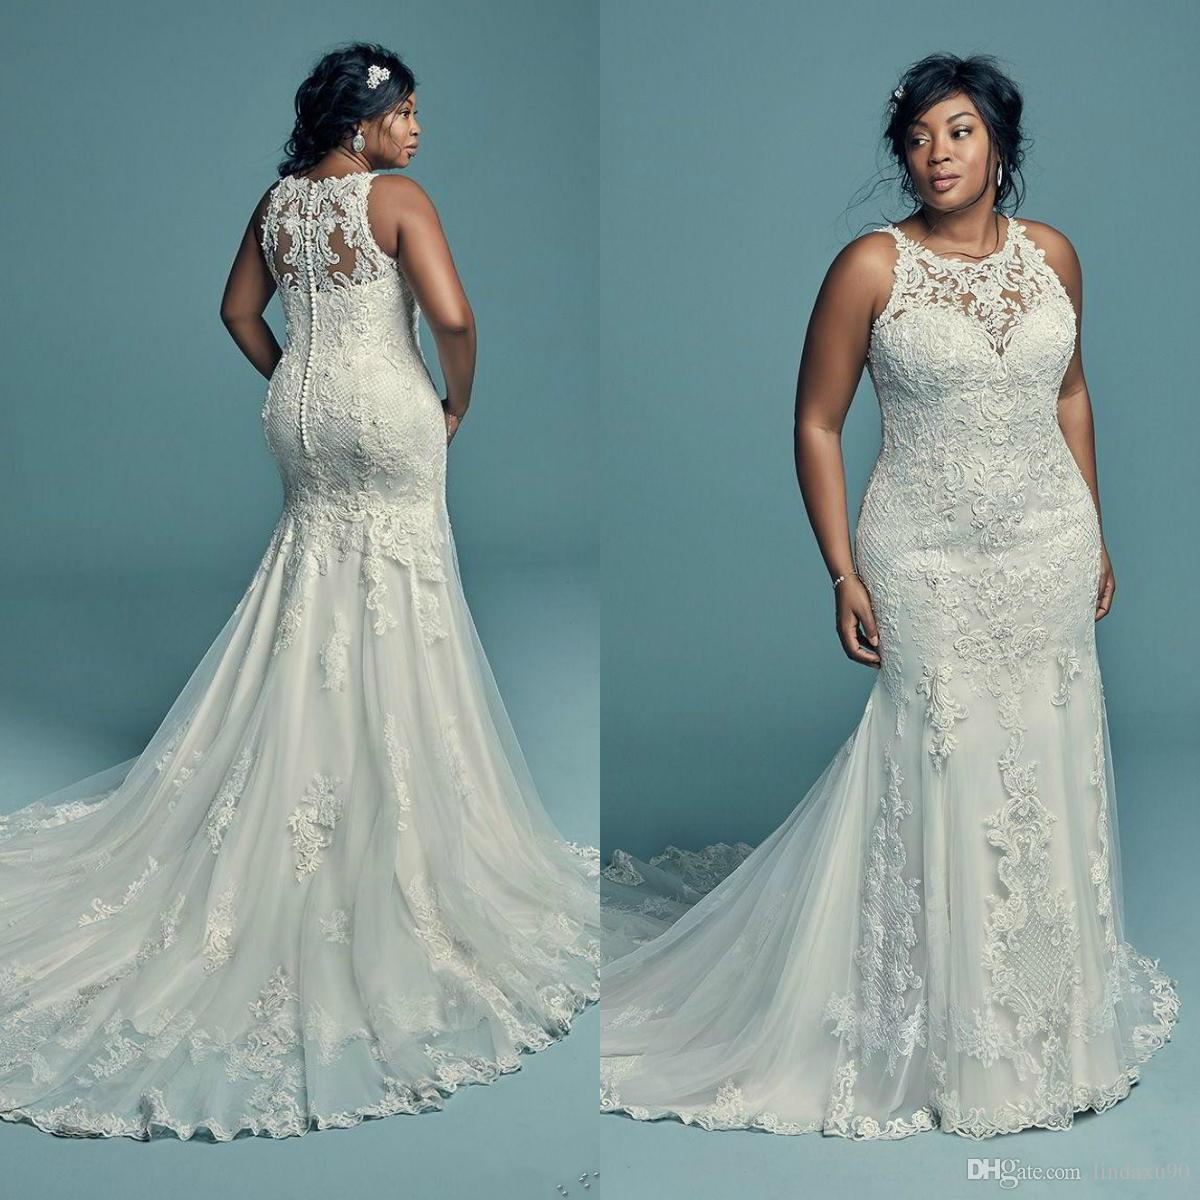 Elegant Lace Applique Plus Size Wedding Dresses Mermaid Sleeveless Sweep  Train Bridal Gowns Summer African Button Back Bride Dress Cheap Casual ...